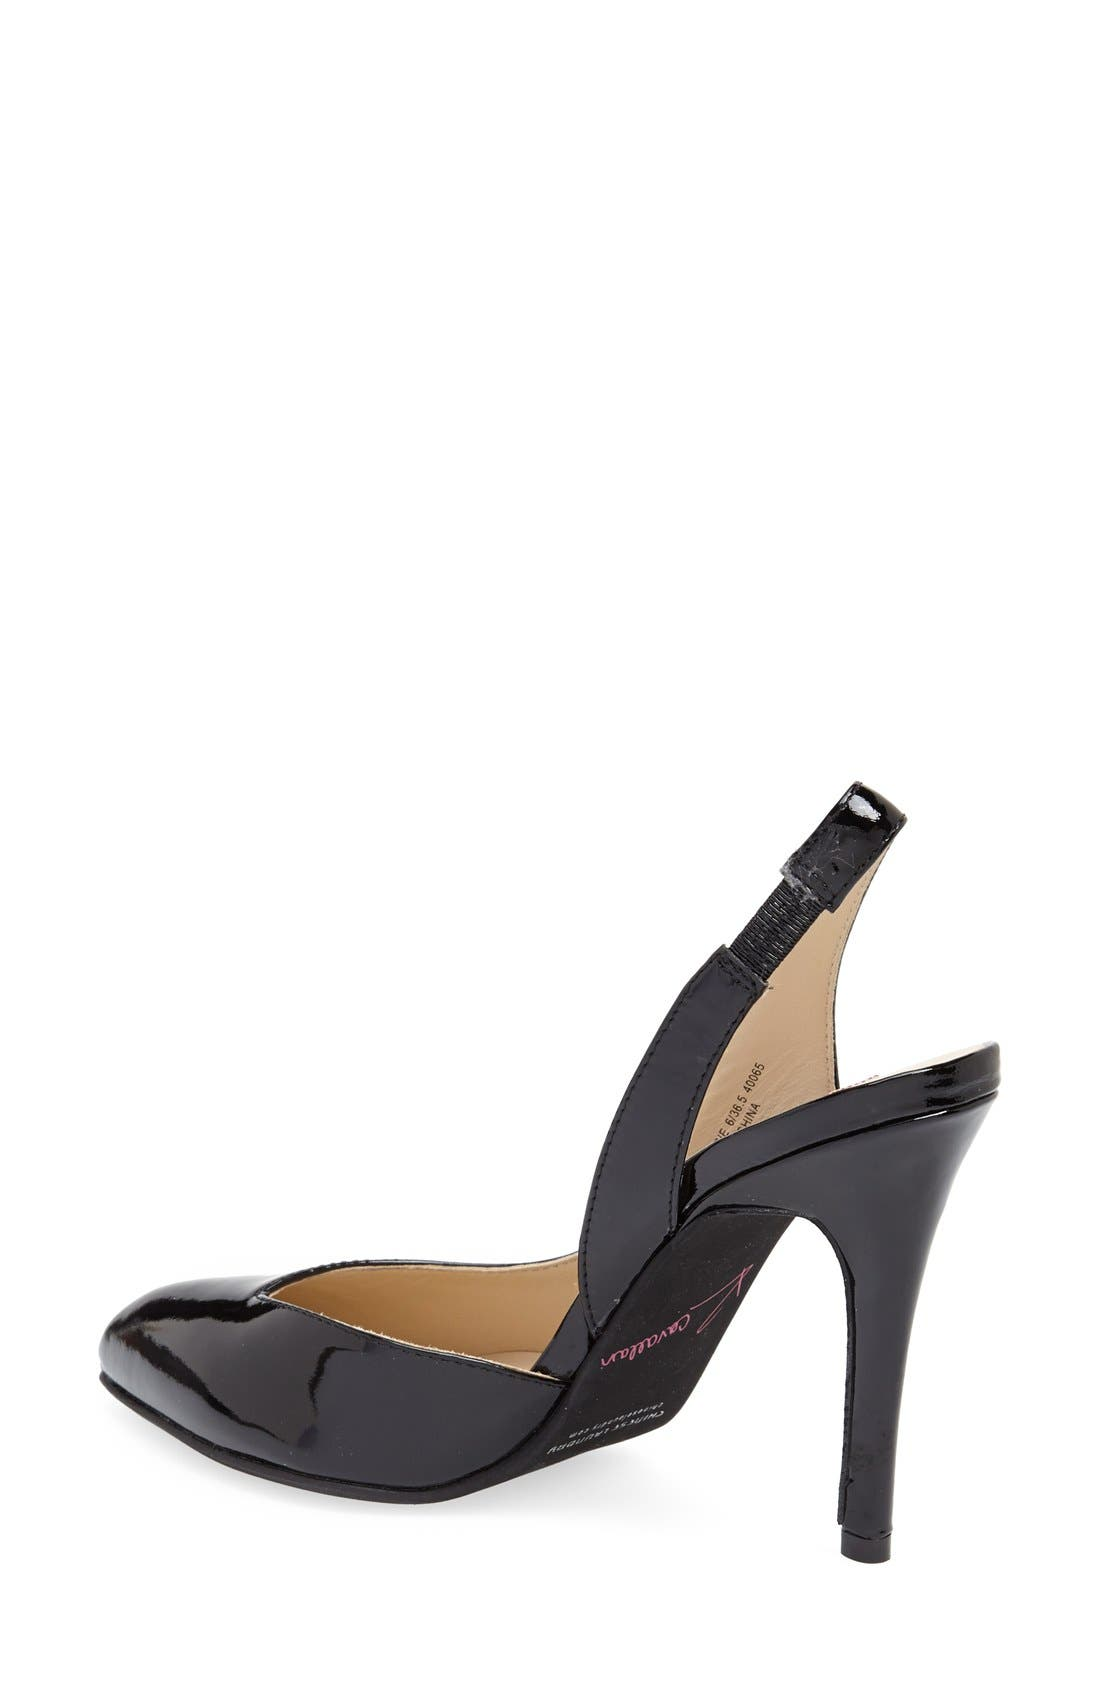 Alternate Image 2  - Kristin Cavallari 'Cambrie' Pump (Women)